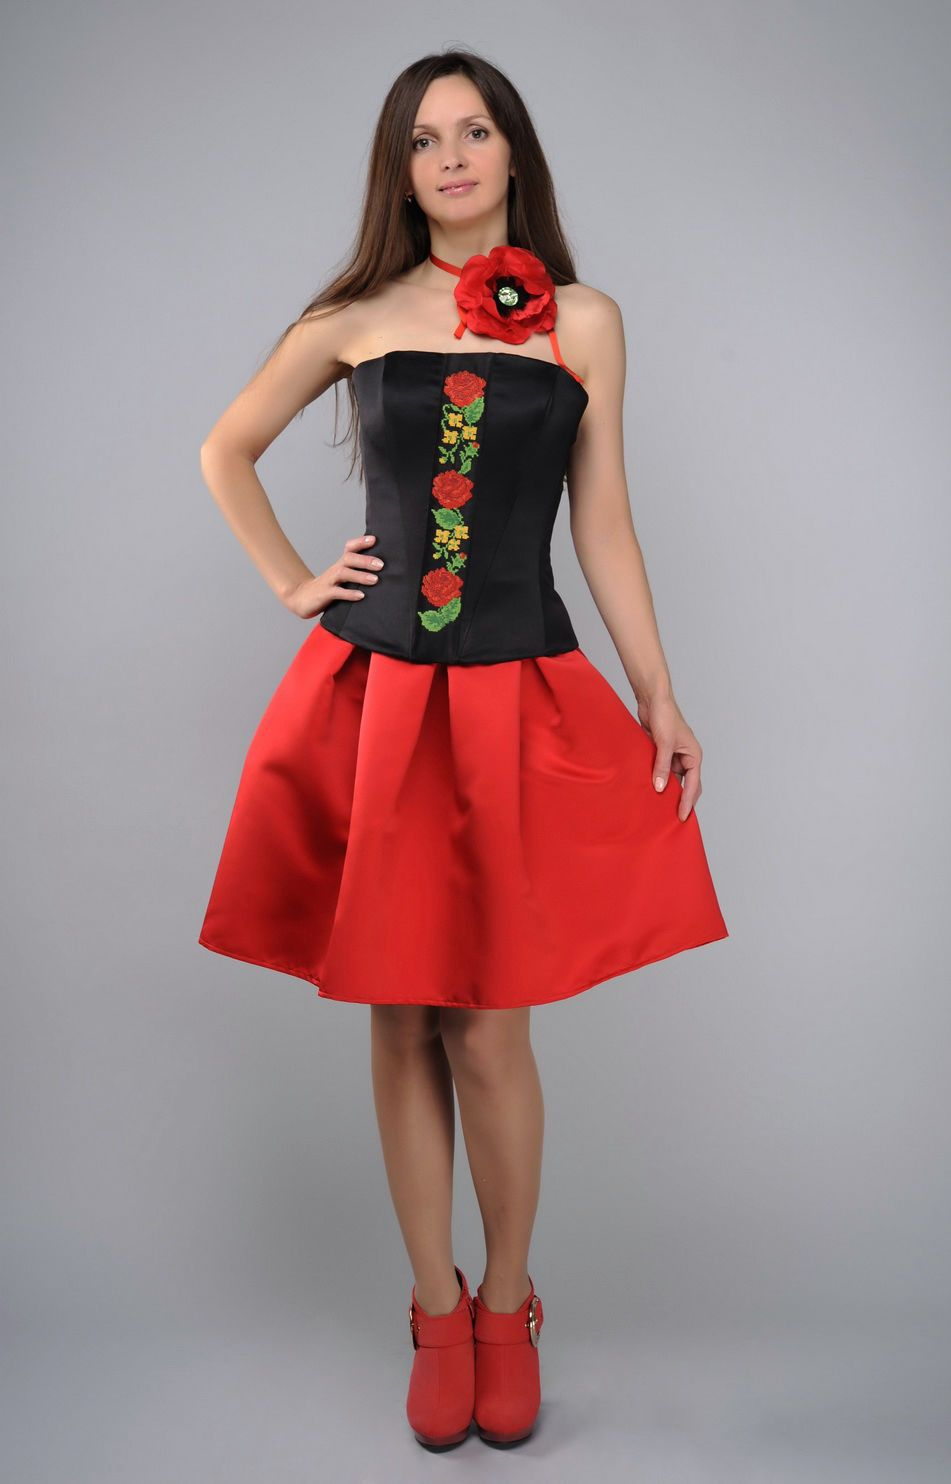 Costume in ethnic style, red and black - MADEheart.com